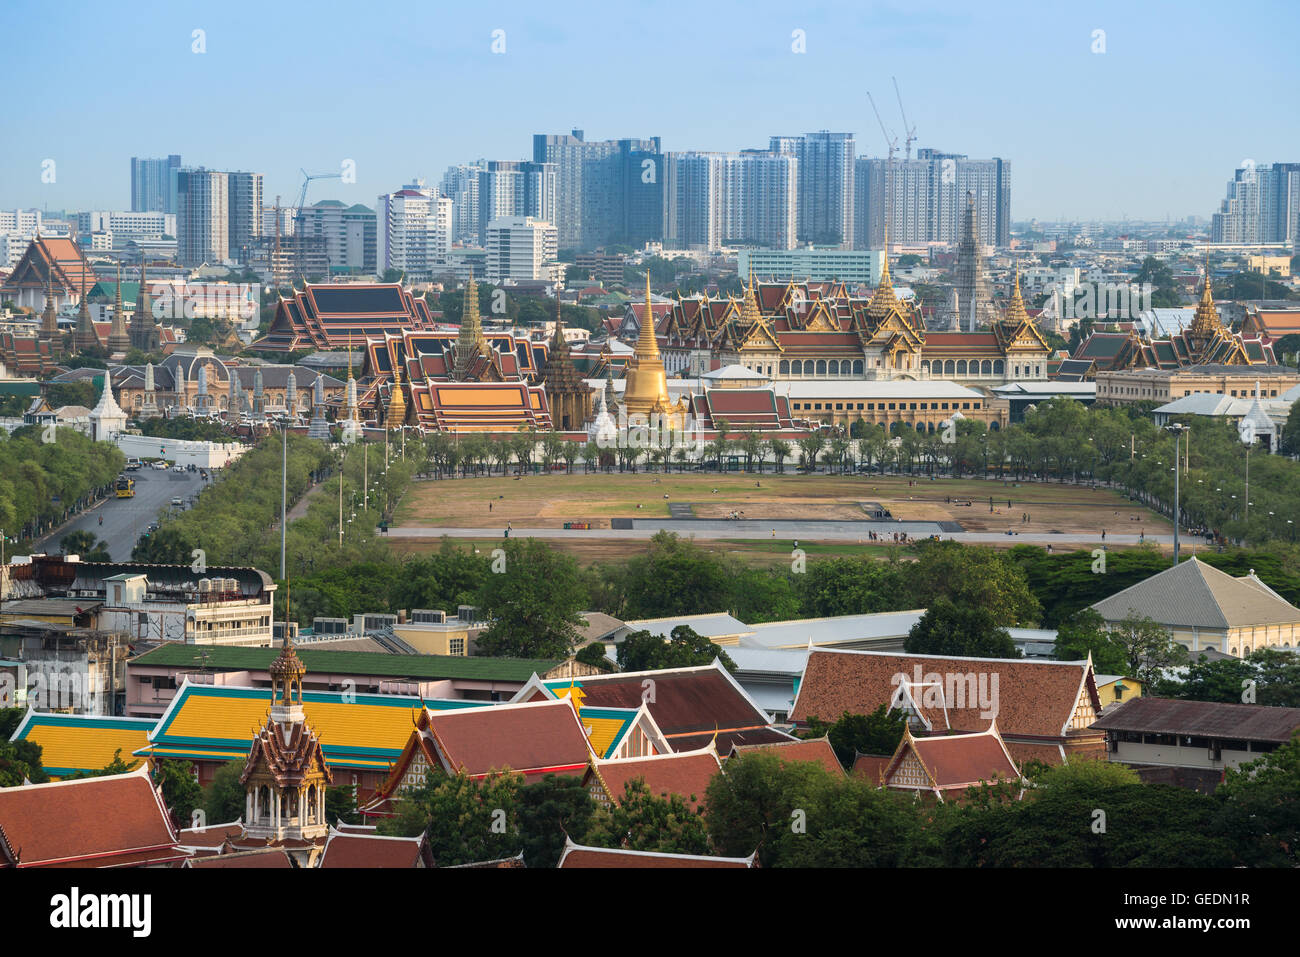 The Bangkok skyline and cityscape of Bangkok the capital cities of Thailand. - Stock Image